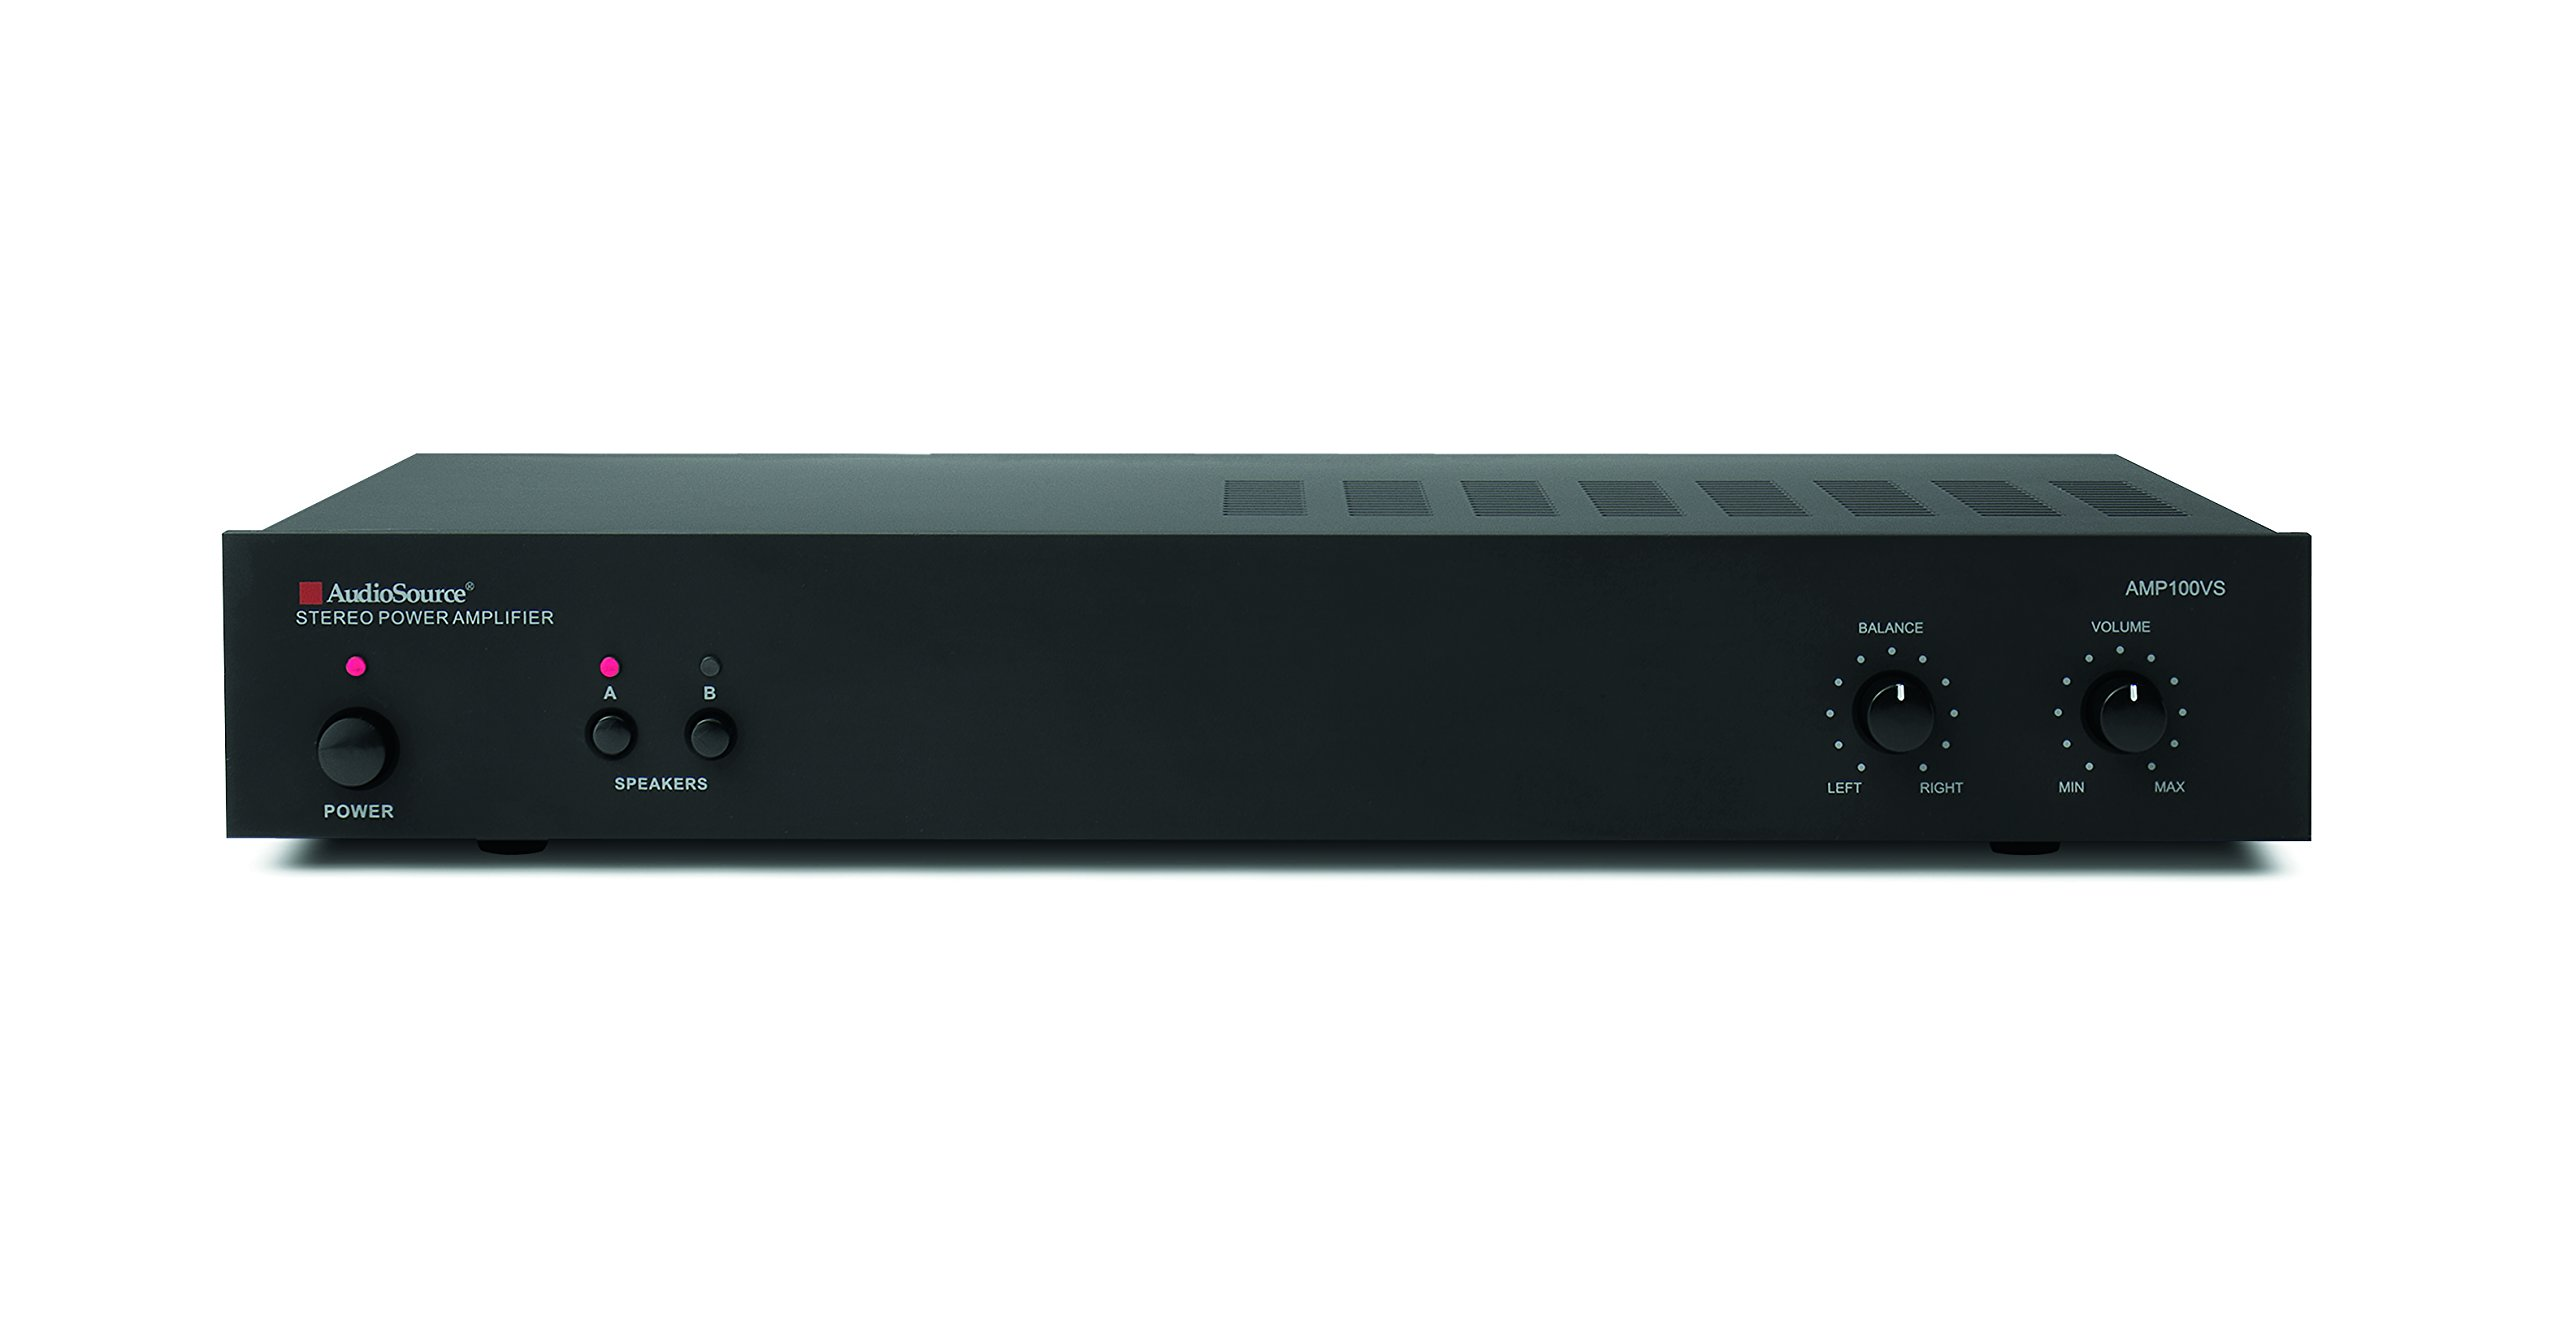 Audio Source AMP100VS 2 Channel Amplifier (Black) by Audiosource